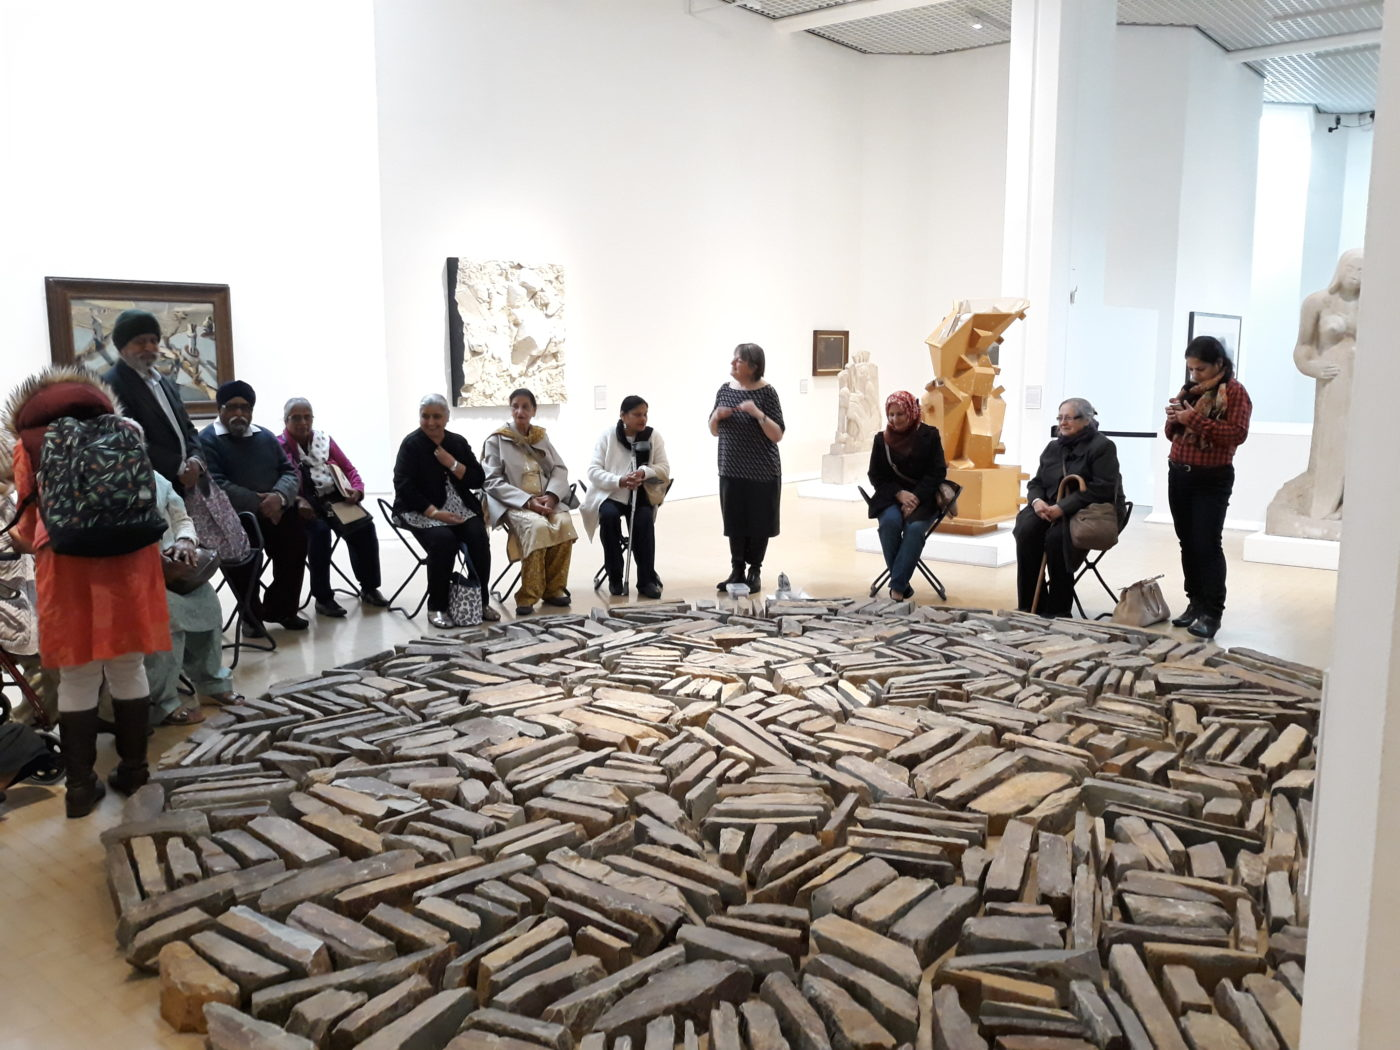 Sally Booth leads a creative sculpture workshop at Leeds Art Gallery, for VocalEyes and Art UK Sculpture